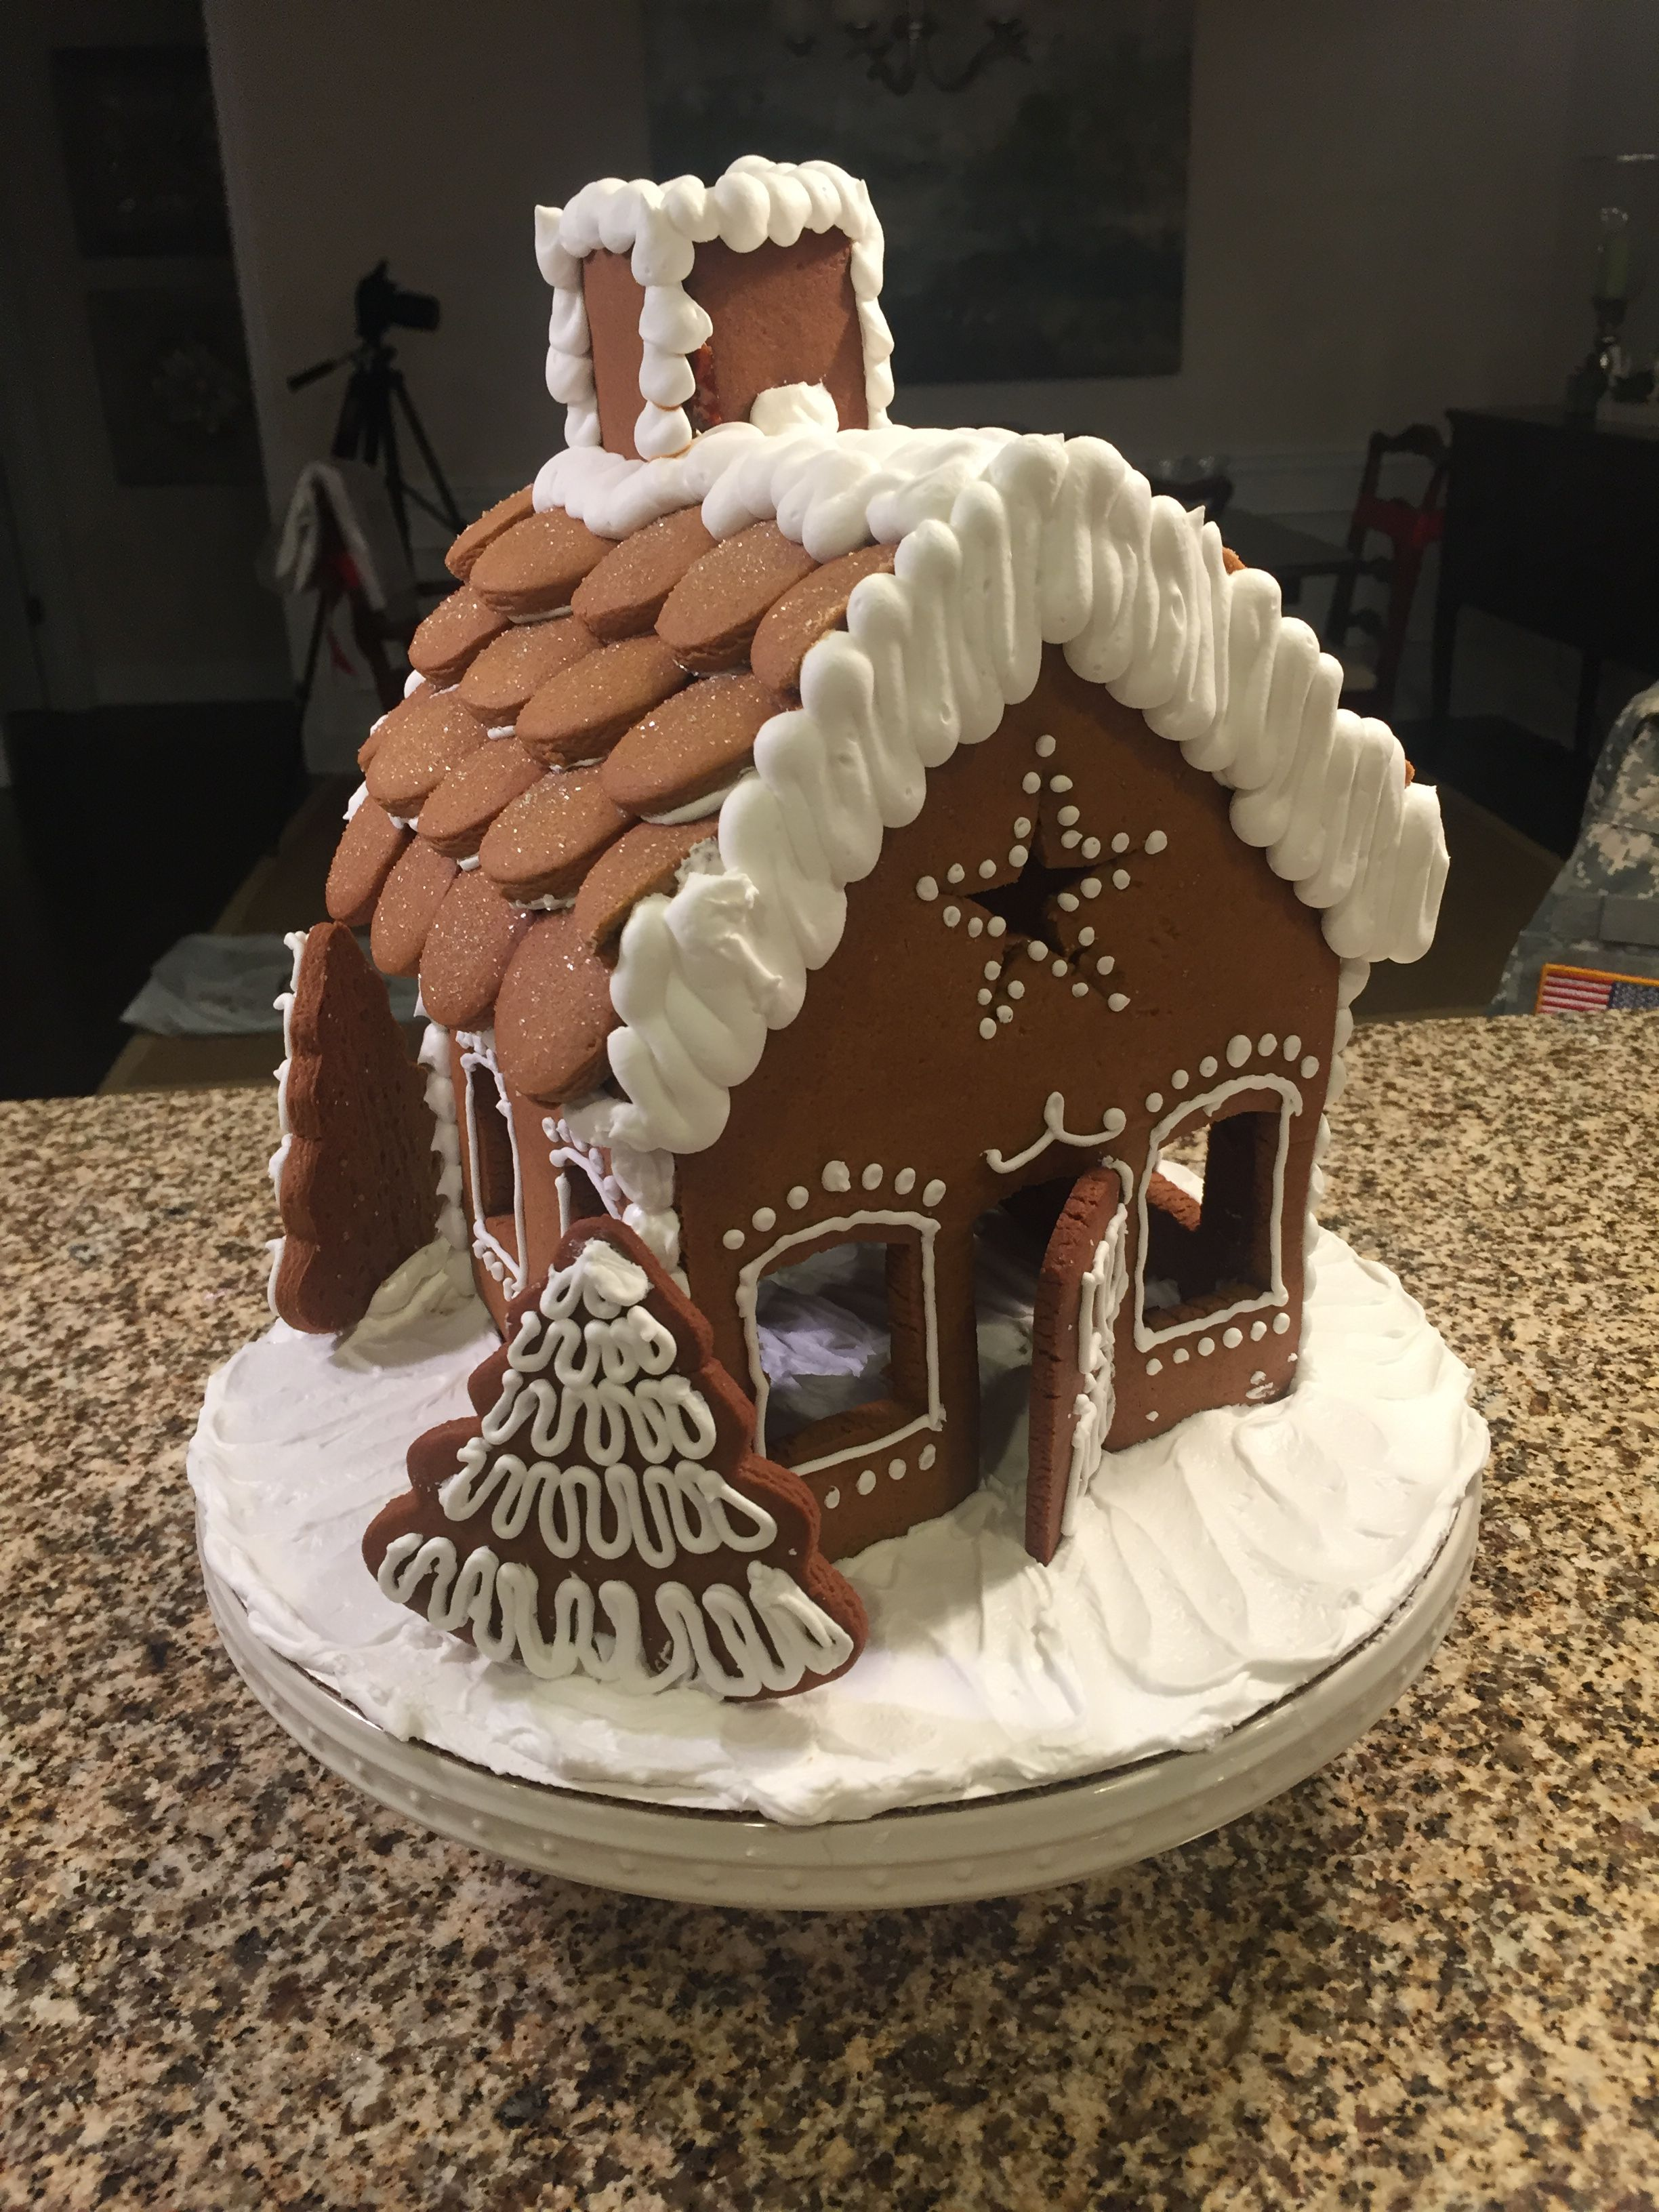 I Used Mary Berry S Gingerbread House Recipe And Template To Create My Version Of This Cute Gingerbread Gingerbread House Recipe Gingerbread House Gingerbread